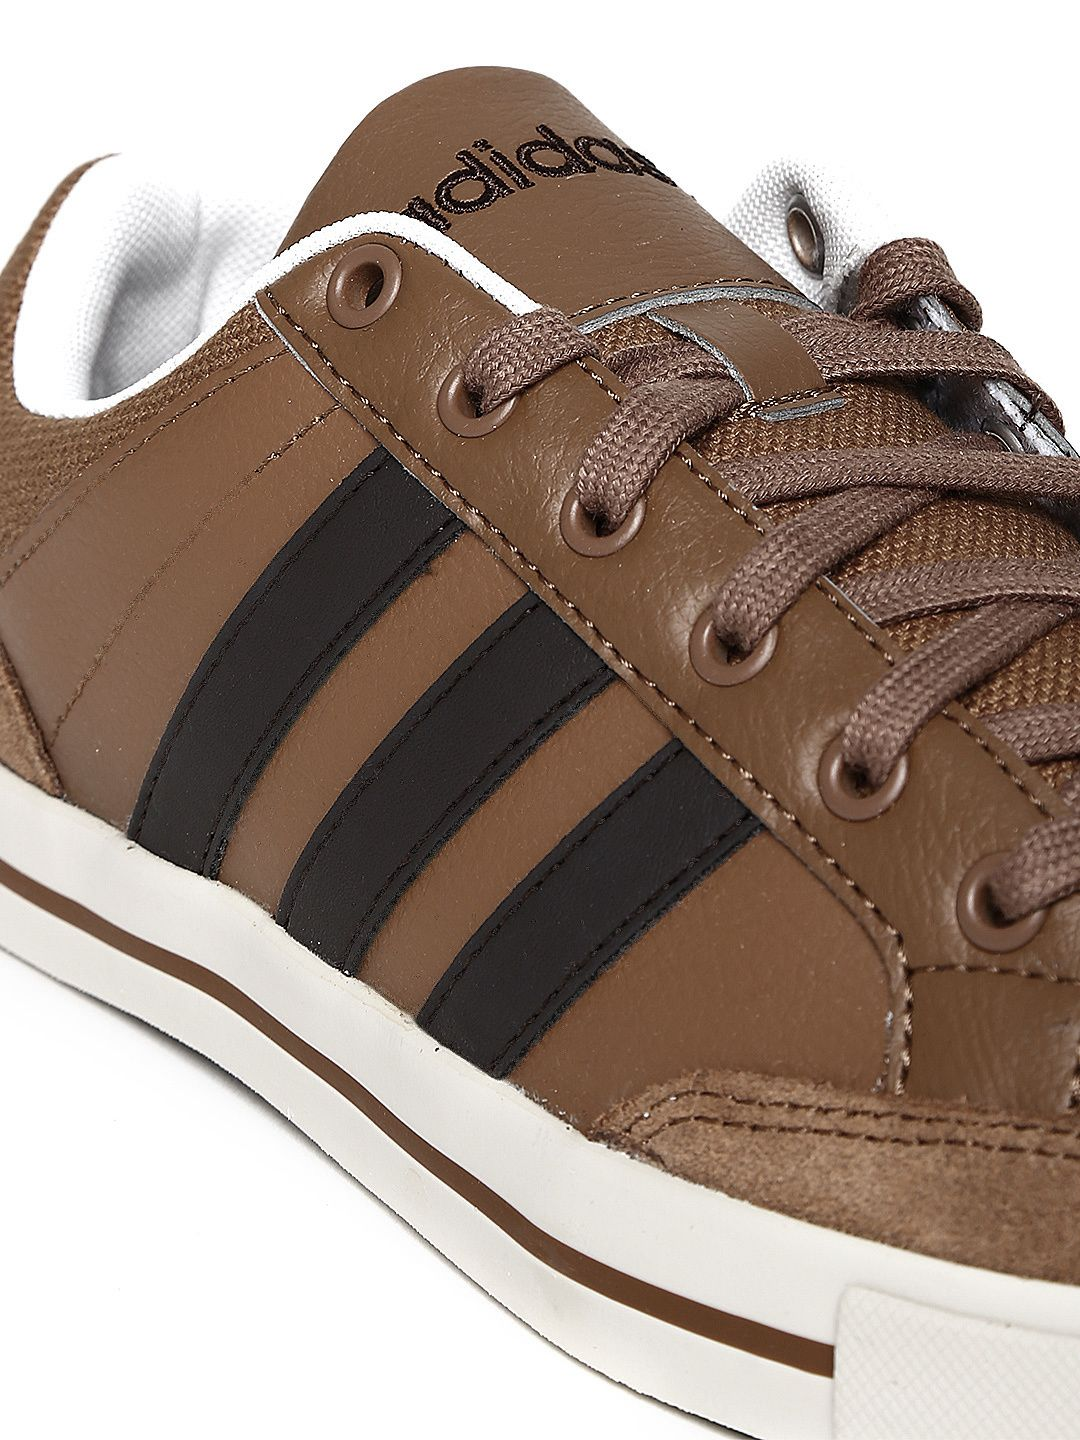 adidas brown leather shoe